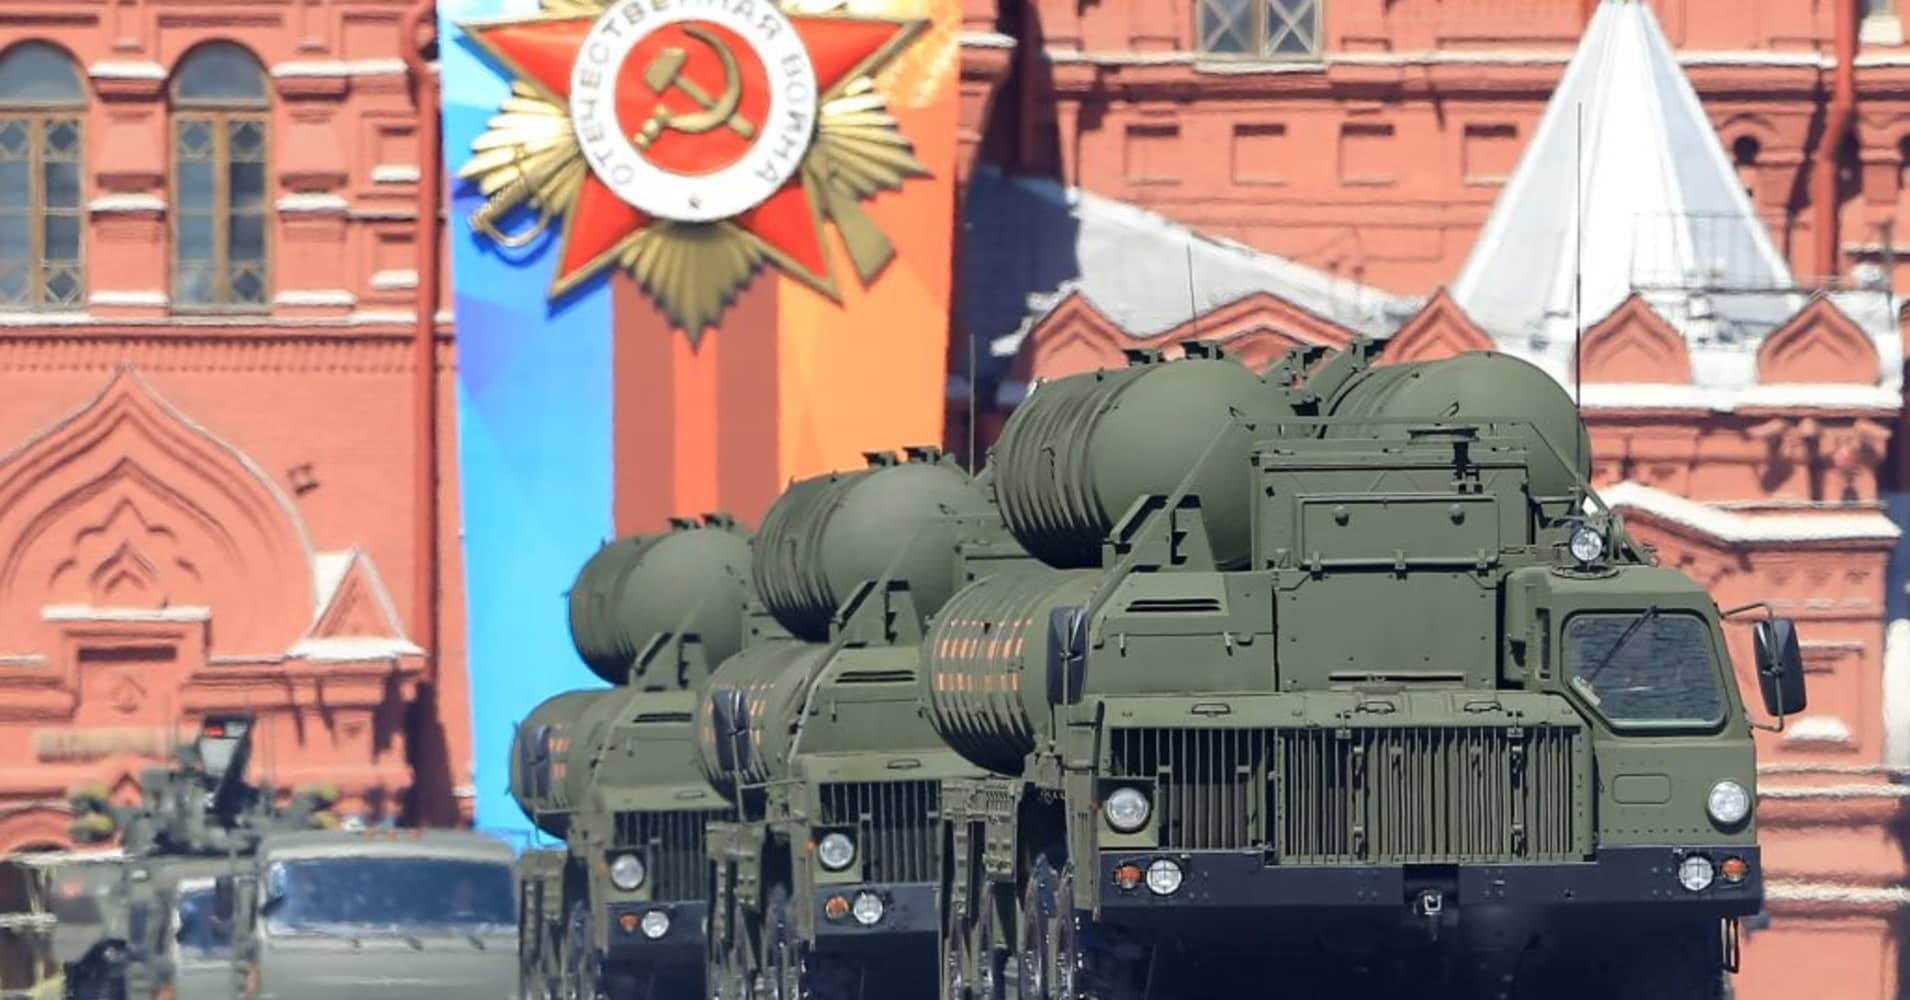 Russia lures buyers as S-400 missile system costs less than US models